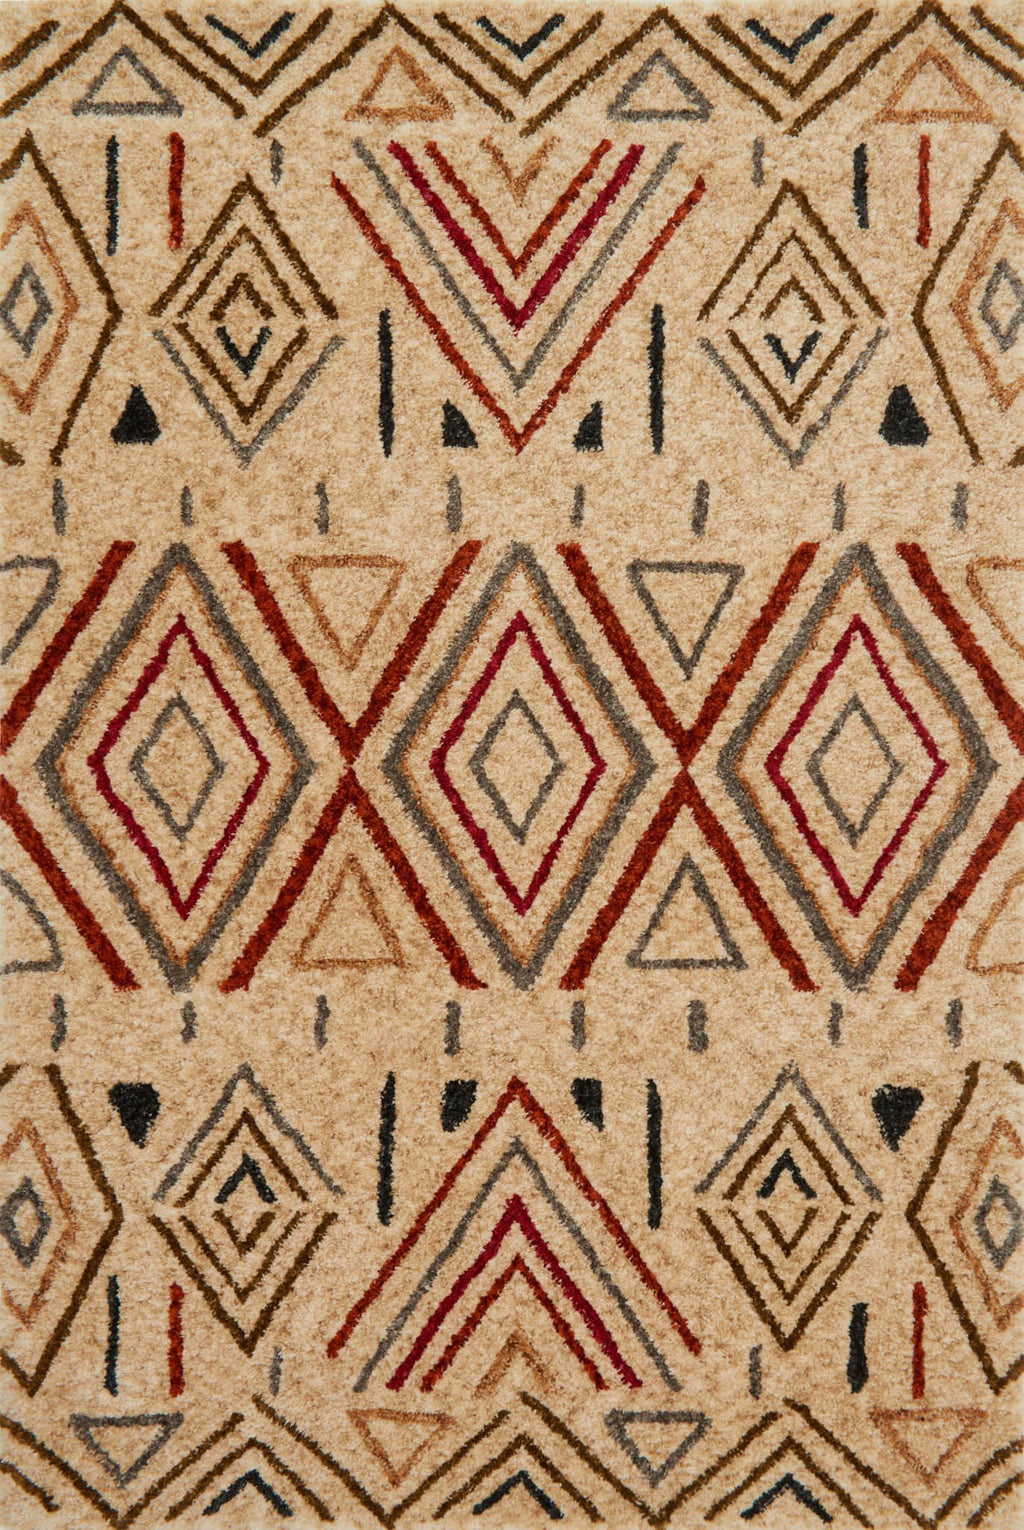 KALLIOPE Collection Rug  in  SAND / RUST Beige Small Hand-Woven Polyester